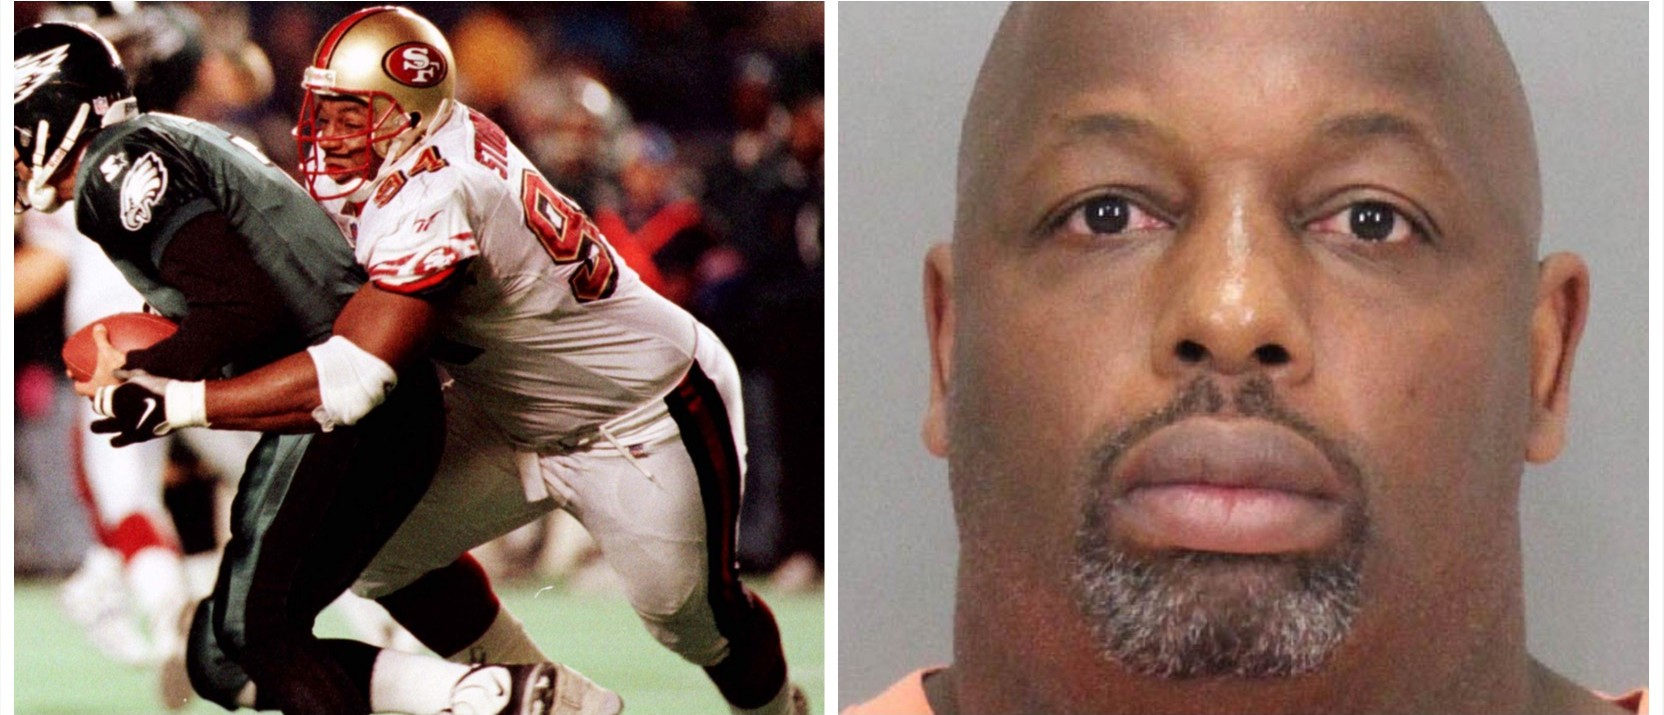 Former 49er Dana Stubblefield Charged With Raping 'Developmentally Delayed' California Woman (Reuters Pictures/Morgan Hill Police)